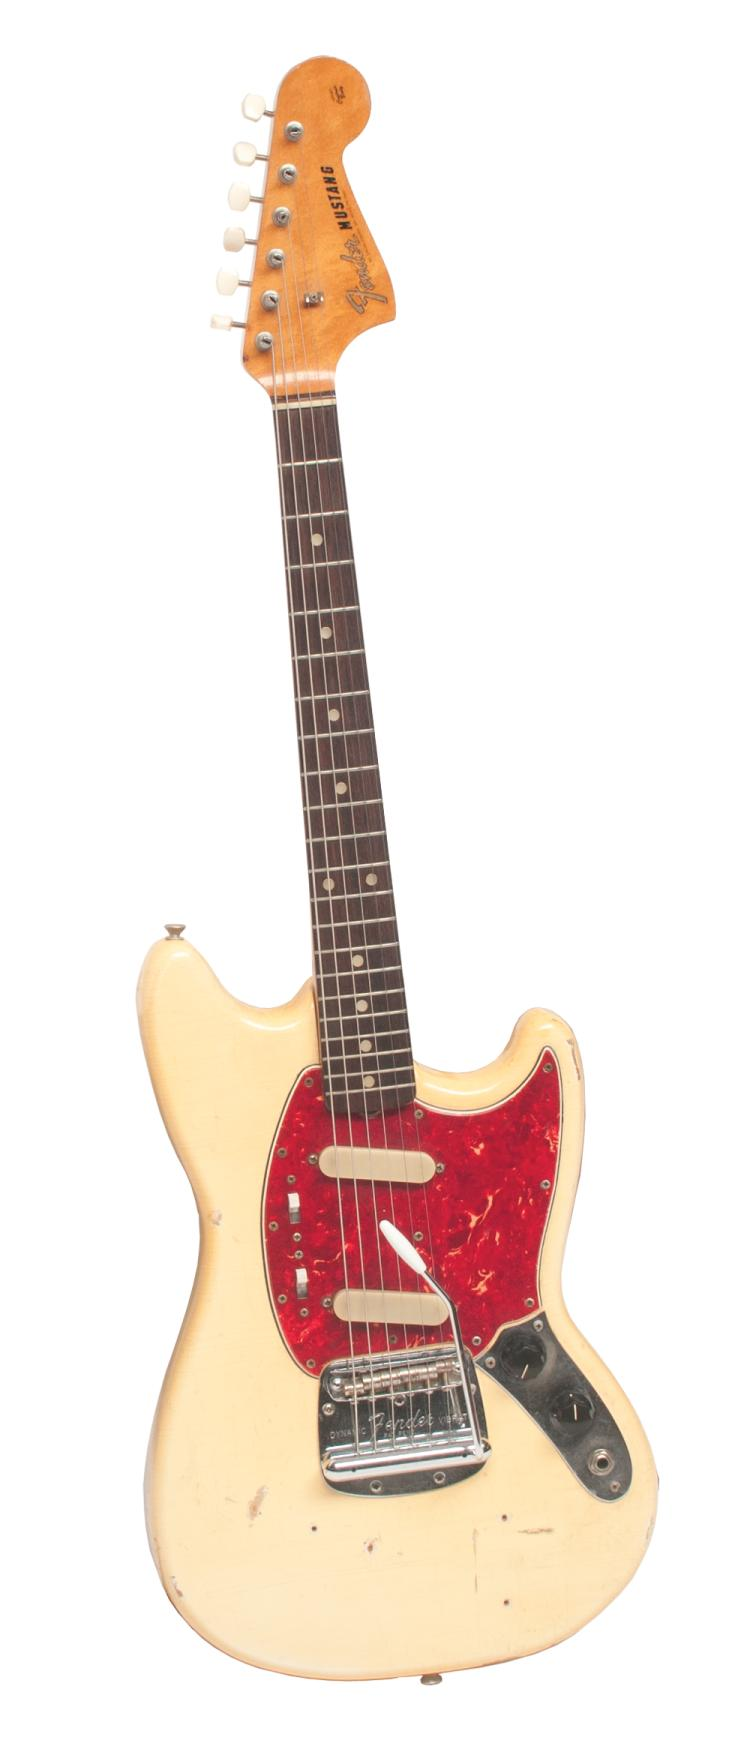 1966 Fender Mustang Olympic White guitar, Live Performance guitar owned and played by Tom T. Hall, serial #139926 with original strings